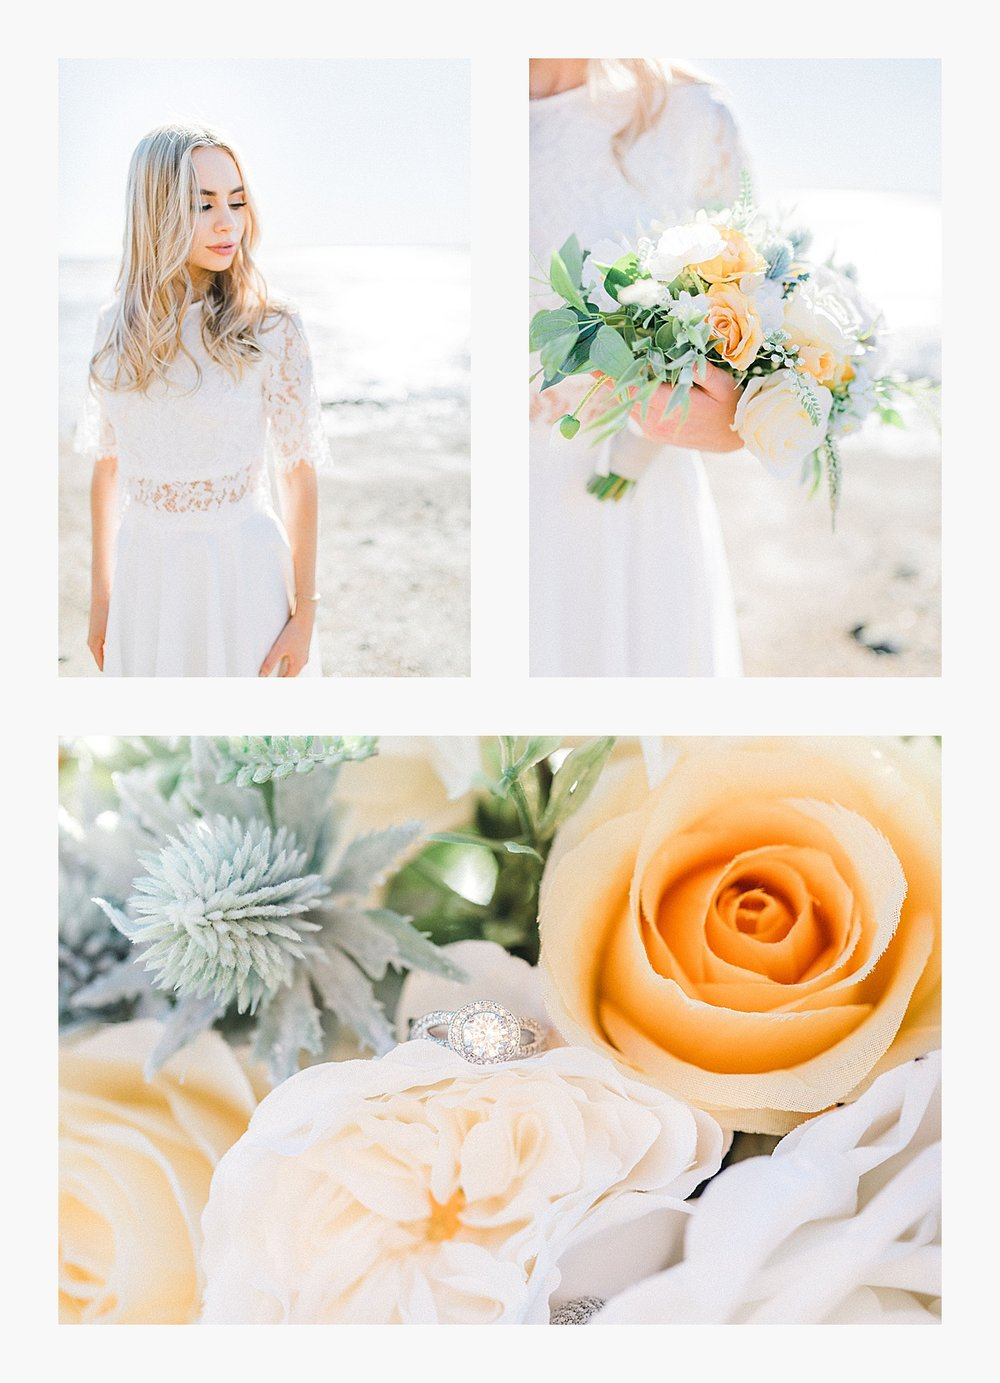 Styled bridal portraits on the beach in simple lace wedding skirt and lace top with Emma Rose Company.  Yellow and ivory inspired bridal shoot in the Pacific Northwest._0000.jpg